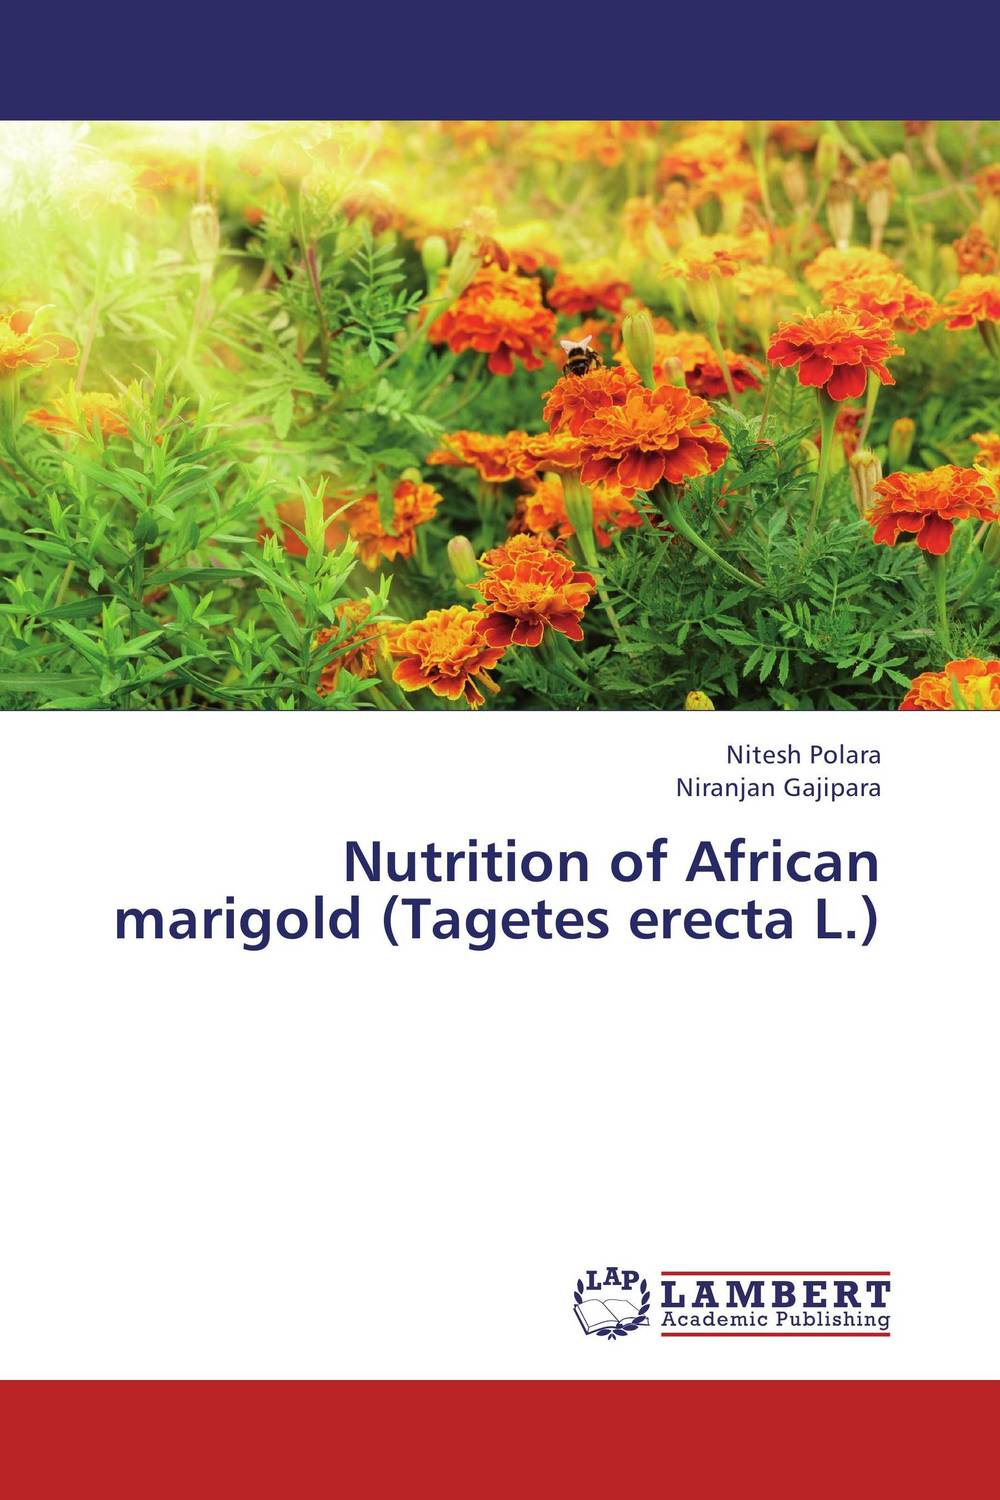 Nutrition of African marigold (Tagetes erecta L.) the best exotic marigold hotel